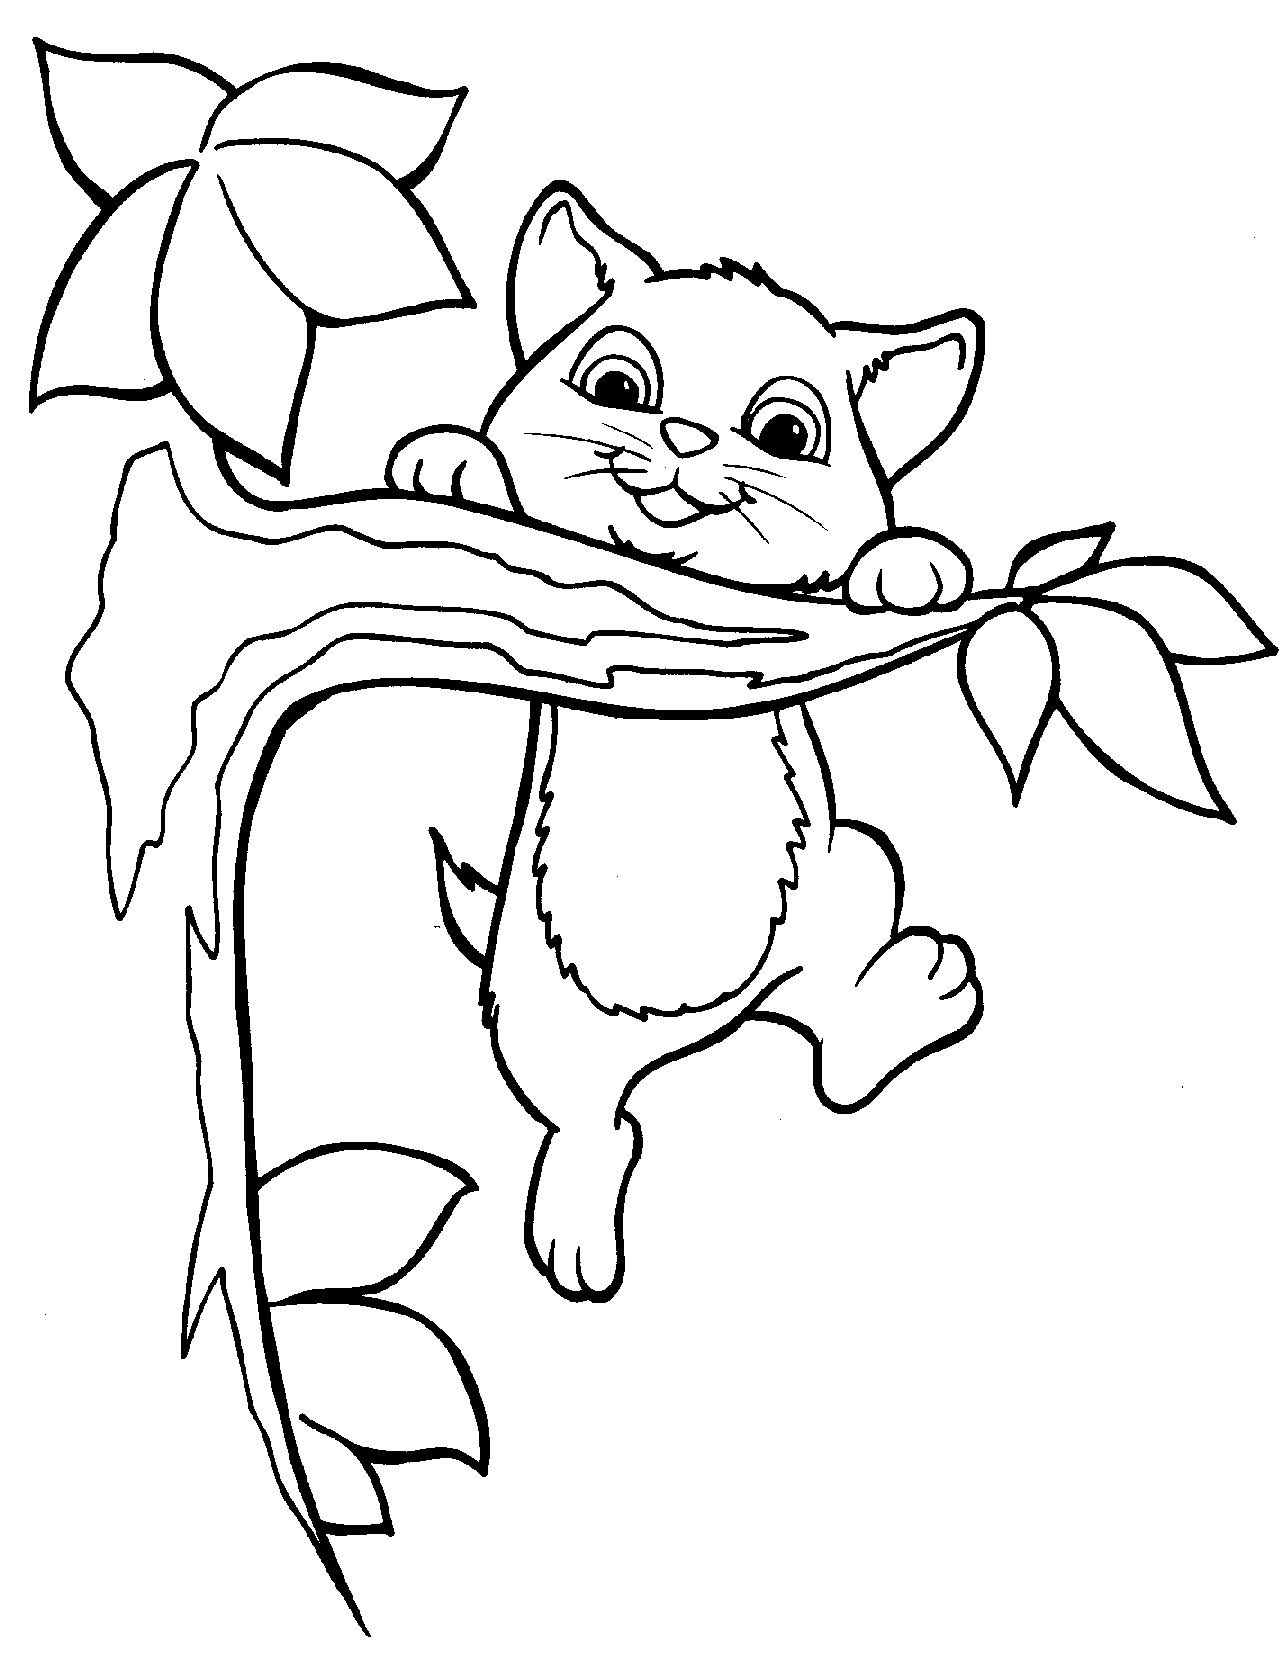 Cat Tree Cats Coloring Pages For Teens And Adults Animal Coloring Pages Cat Coloring Page Cute Coloring Pages